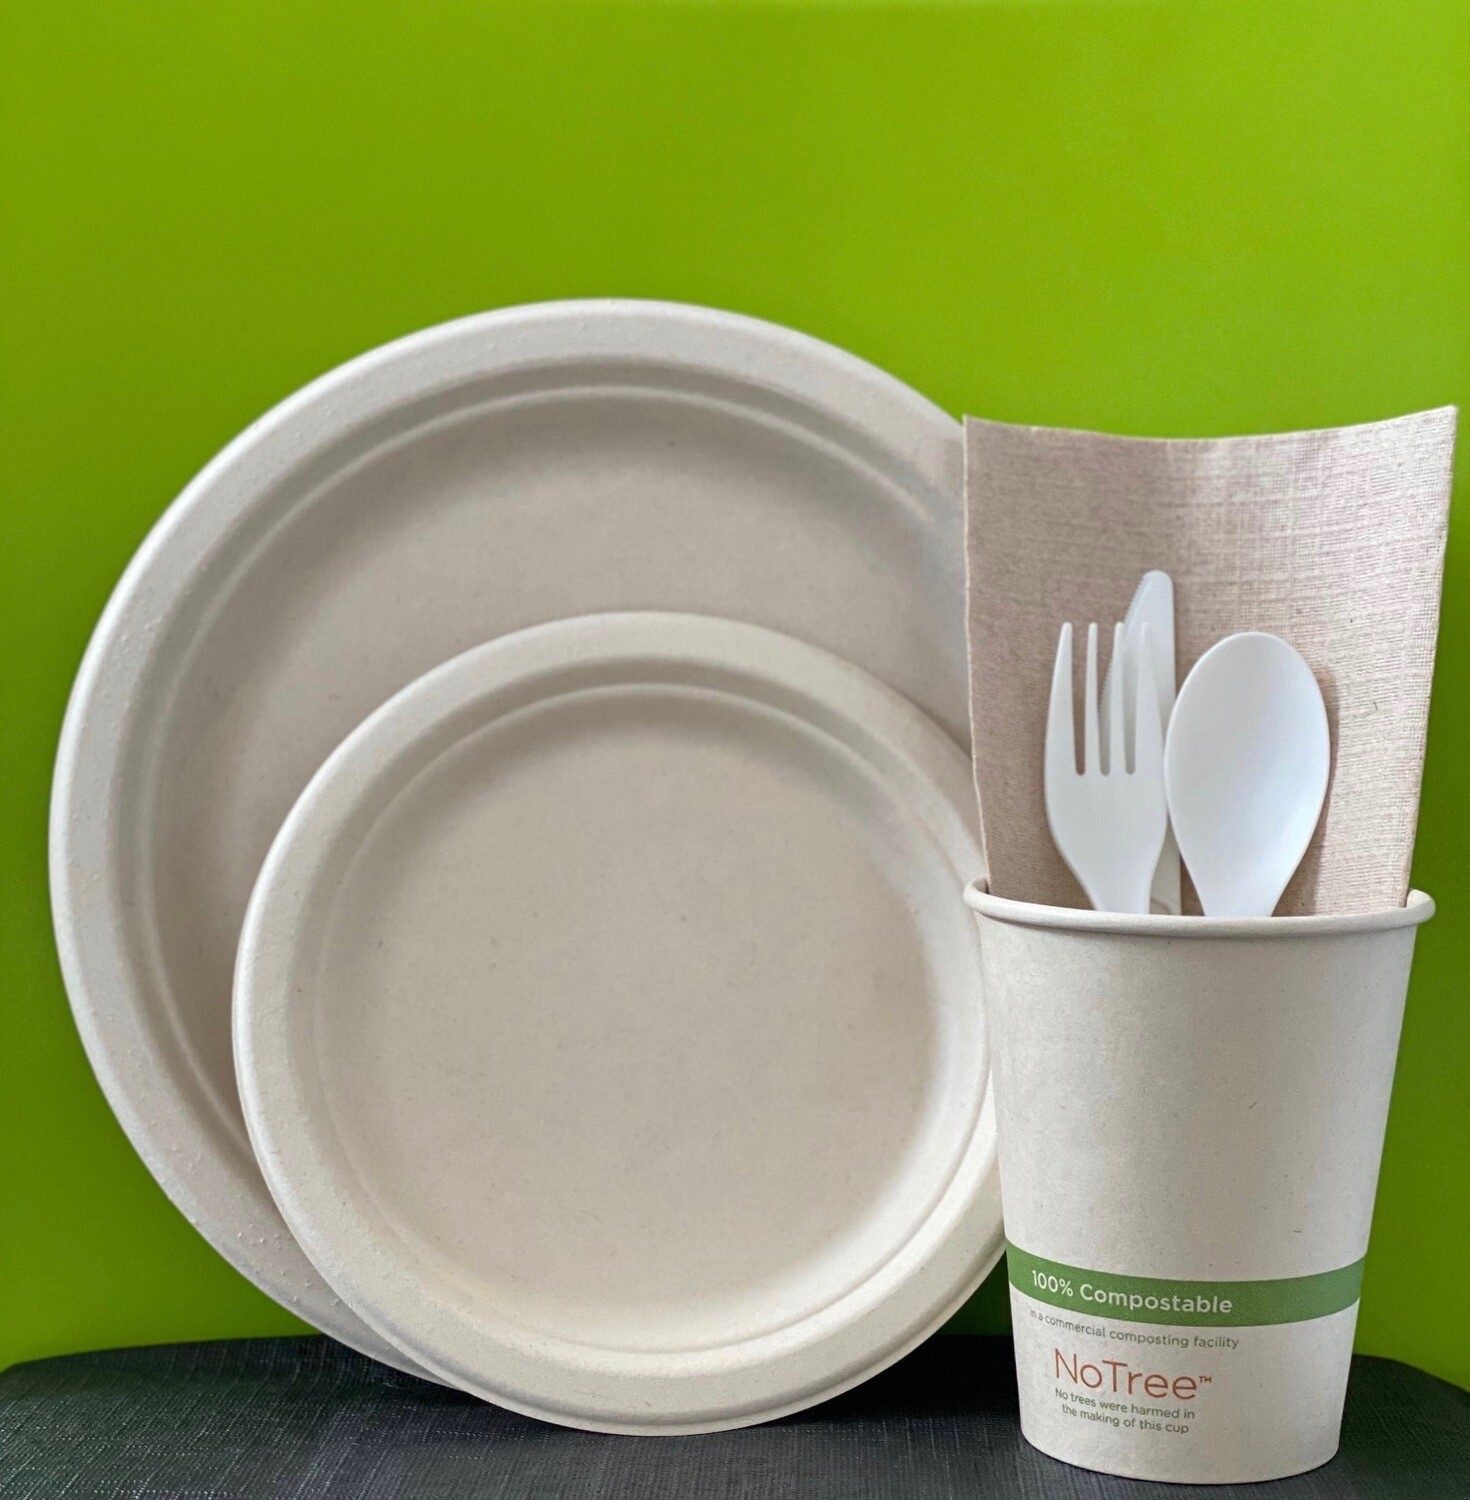 "Caribe Compostables EcoKit (50 Units of Forks/50 Units of Knifes/50 Units of Spoons/50 Units of 7' inch Fiber plates/50 Units of 9"" inch Fiber plates/50 Units of 12oz cups/160 Units of Dinner napkins)"